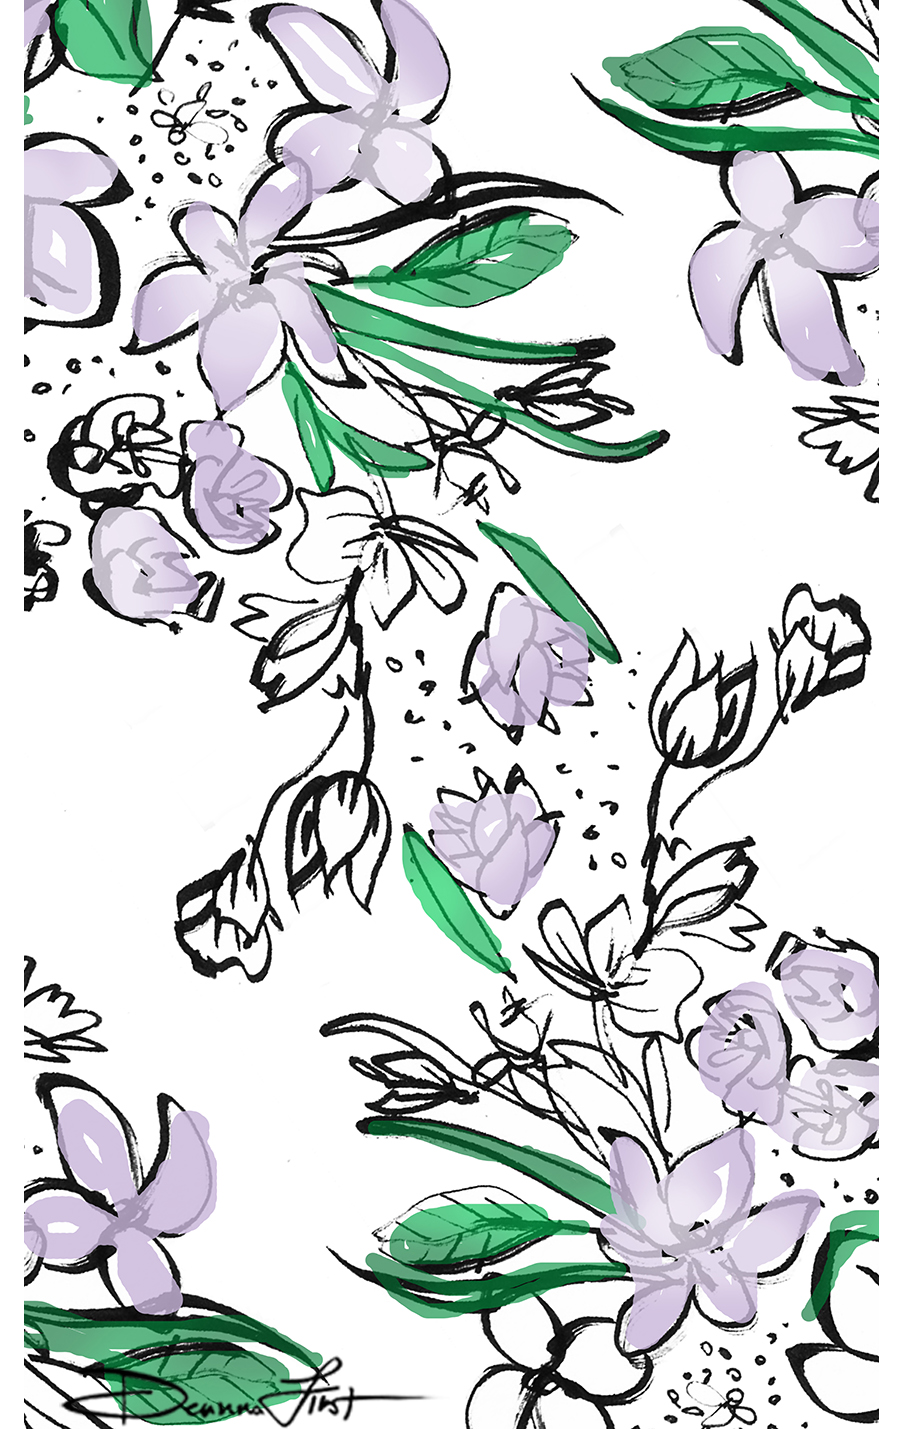 PEN_INKFLORAL_thicklilacemerald_deannafirst.jpg